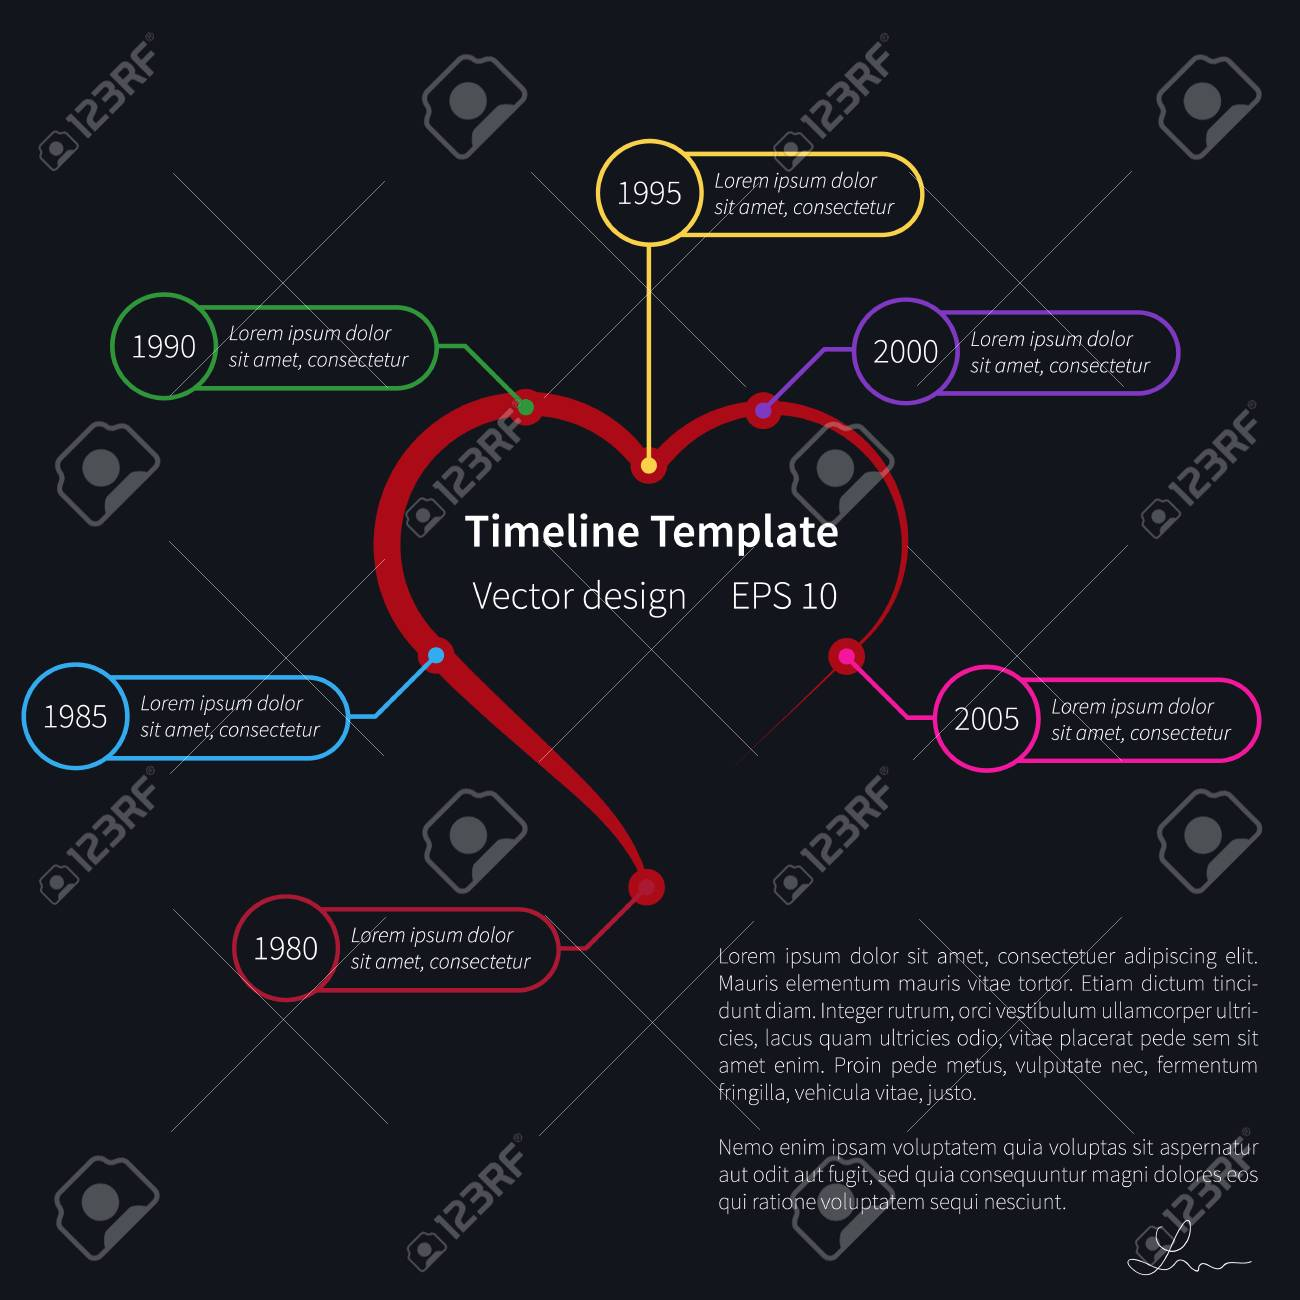 Timeline Template On Dark Background With Heart Shape Royalty Free     timeline template on dark background with heart shape Stock Vector    51655371